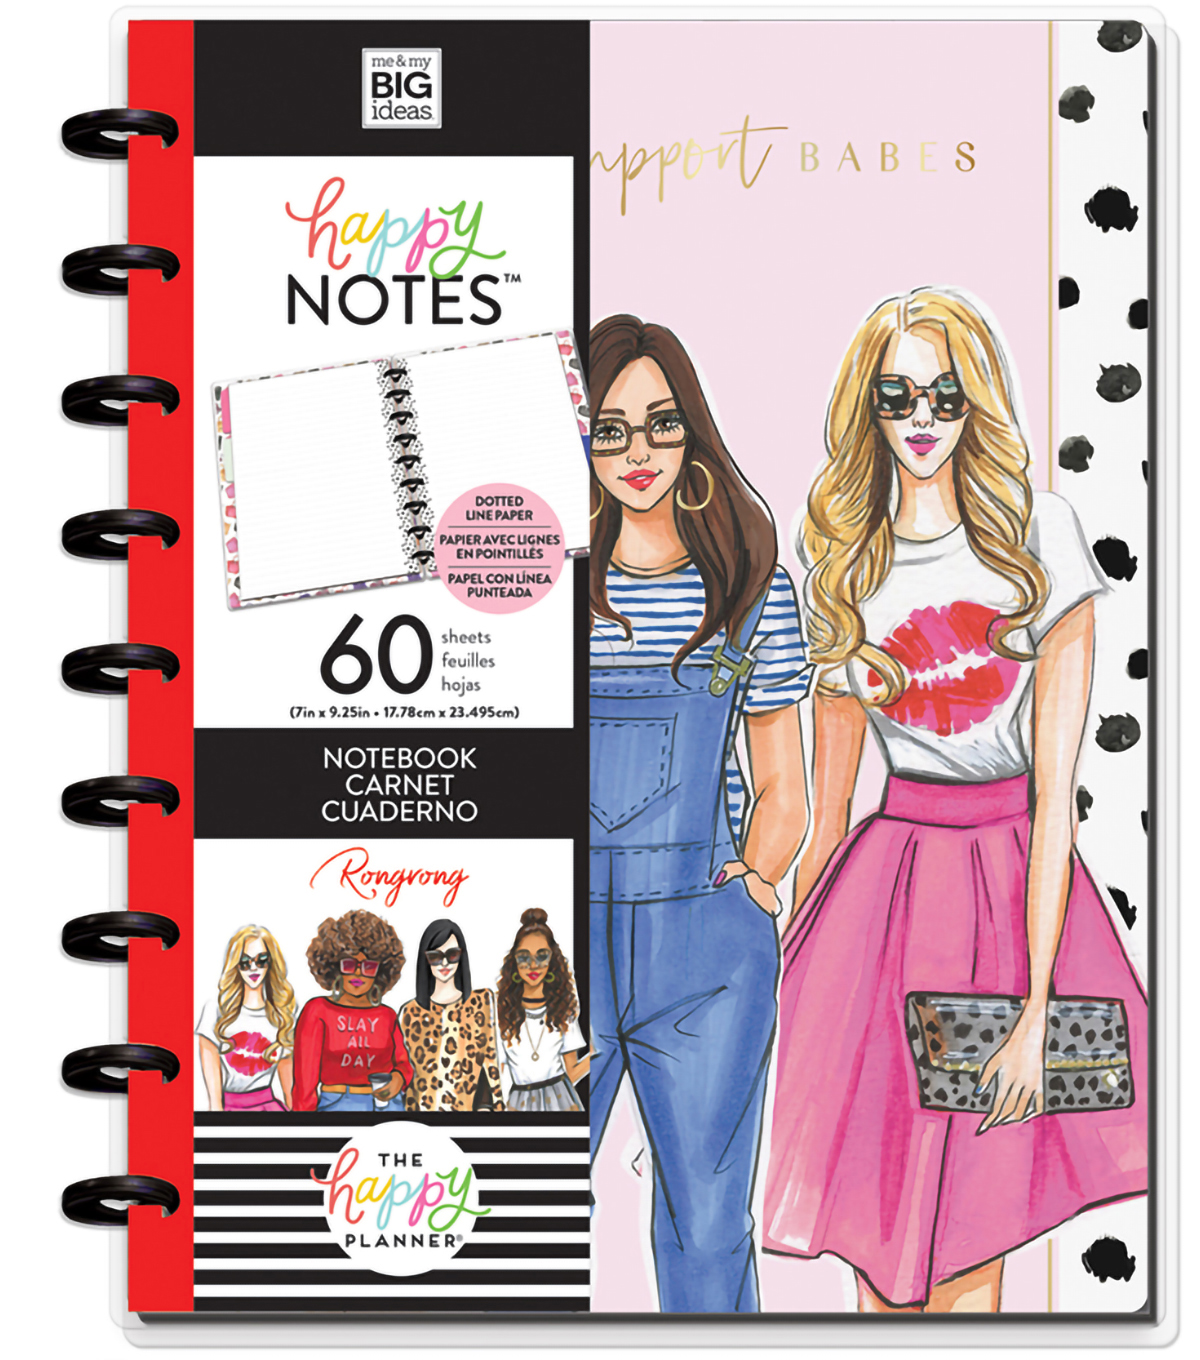 The Happy Planner x Rongrong Classic Happy Notes-Babes Support Babes